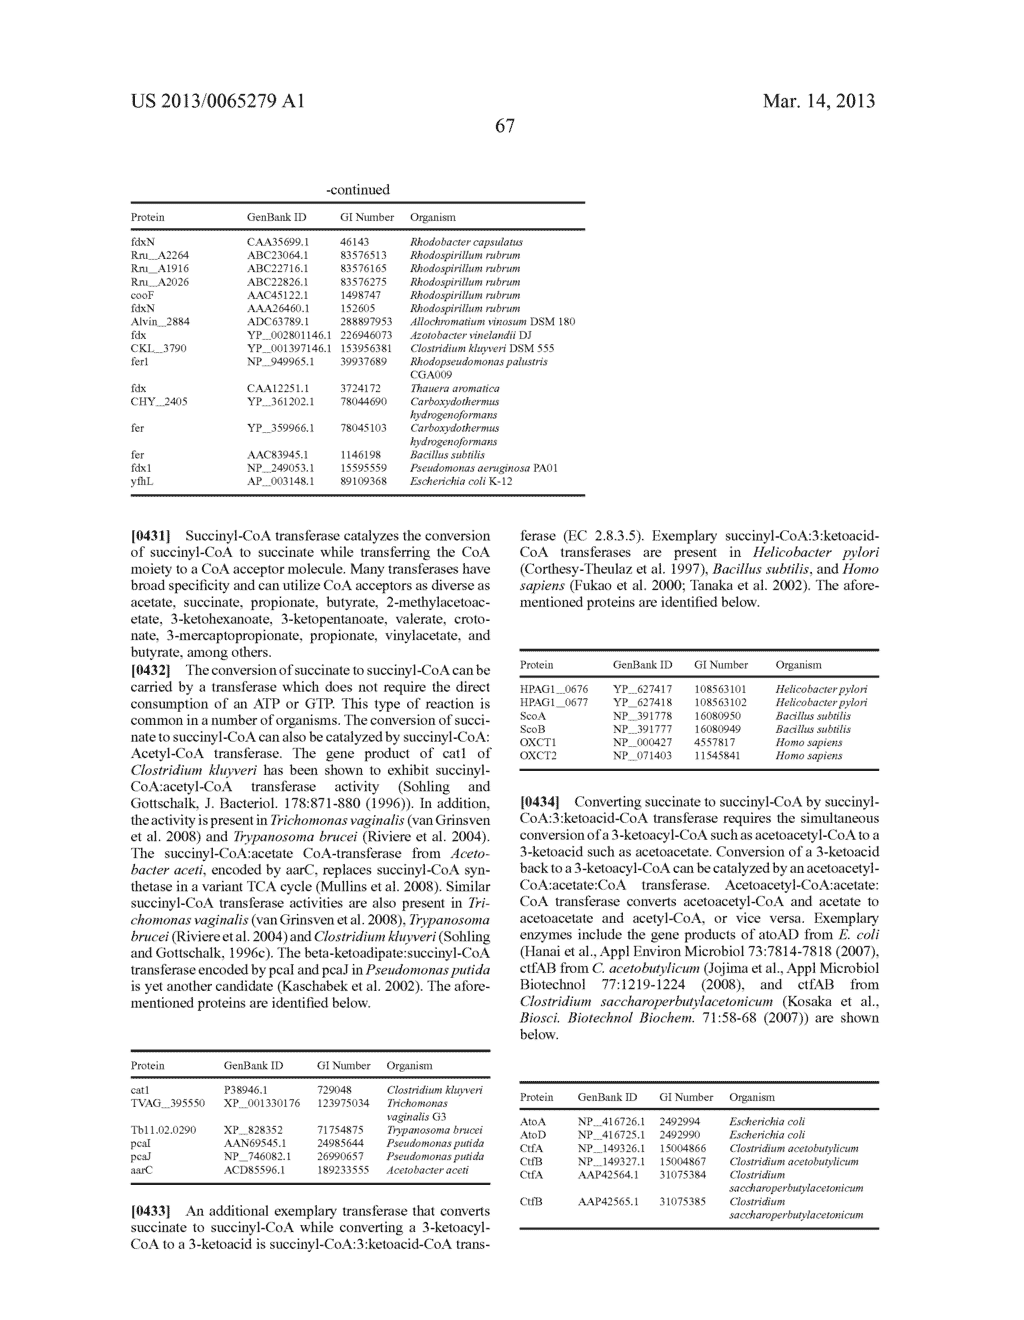 MICROORGANISMS FOR PRODUCING METHACRYLIC ACID AND METHACRYLATE ESTERS AND     METHODS RELATED THERETO - diagram, schematic, and image 107